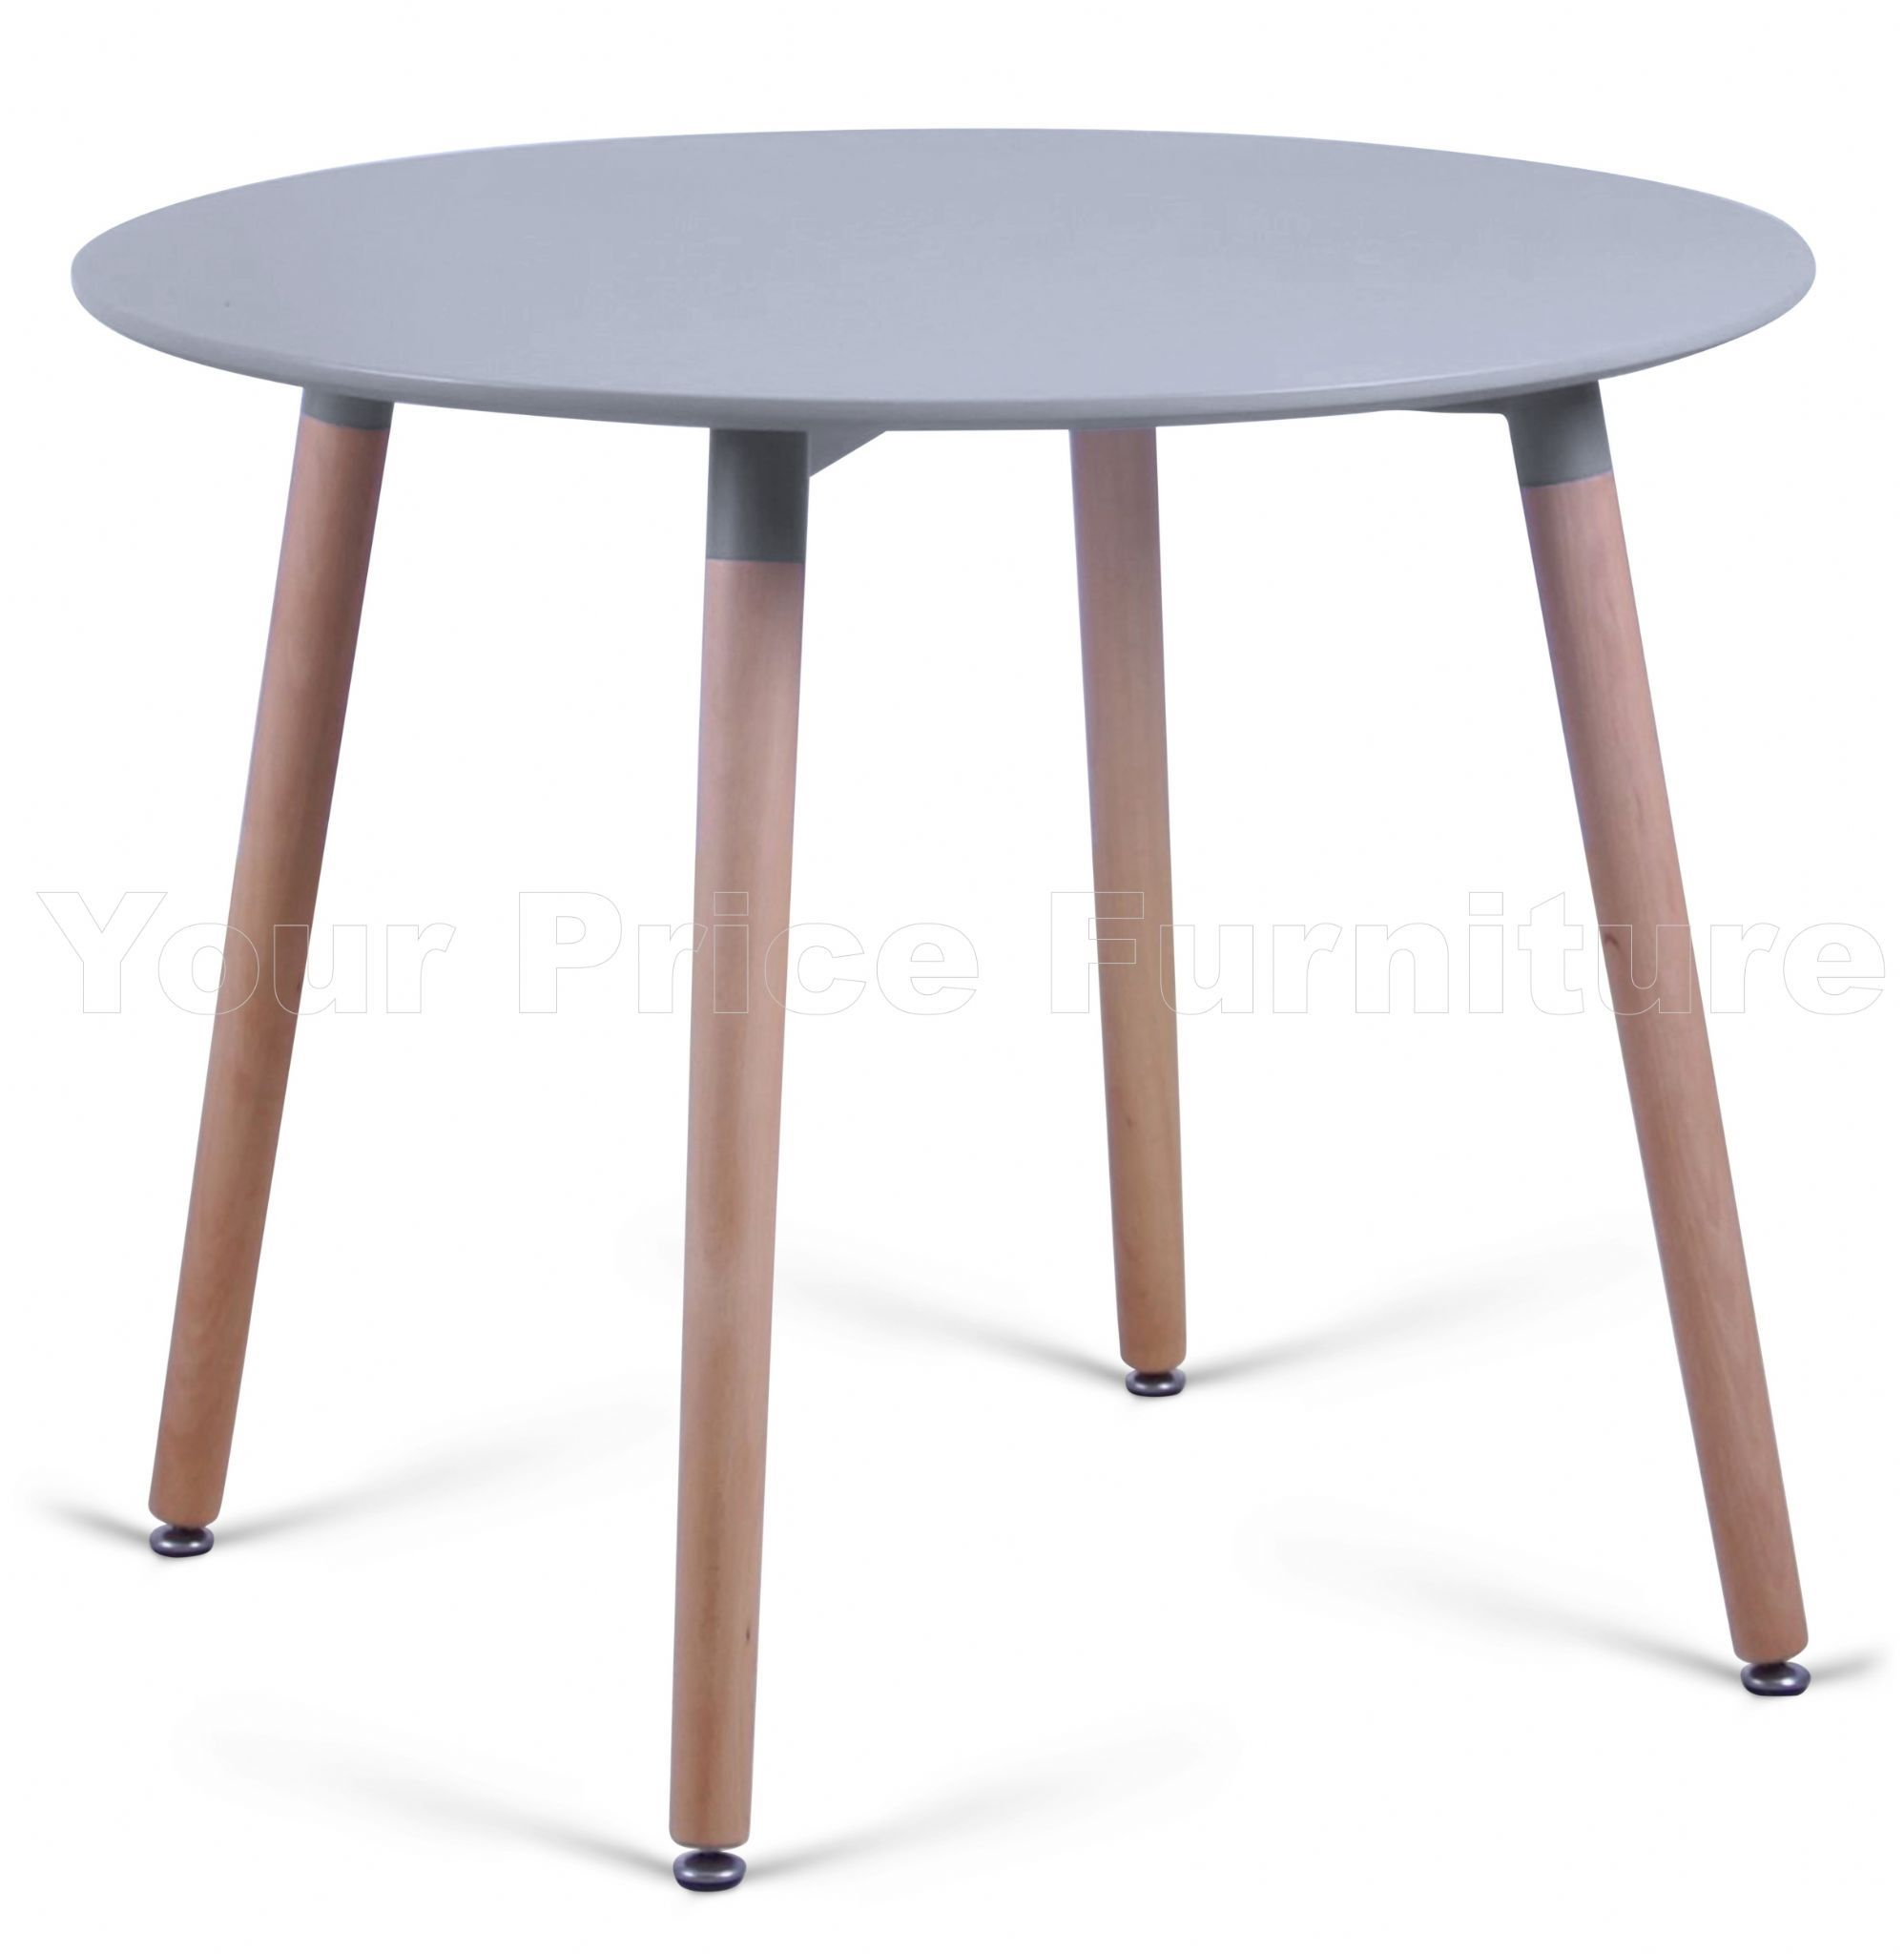 Eiffel grey designer dining table round small sale now on for Small round dining table